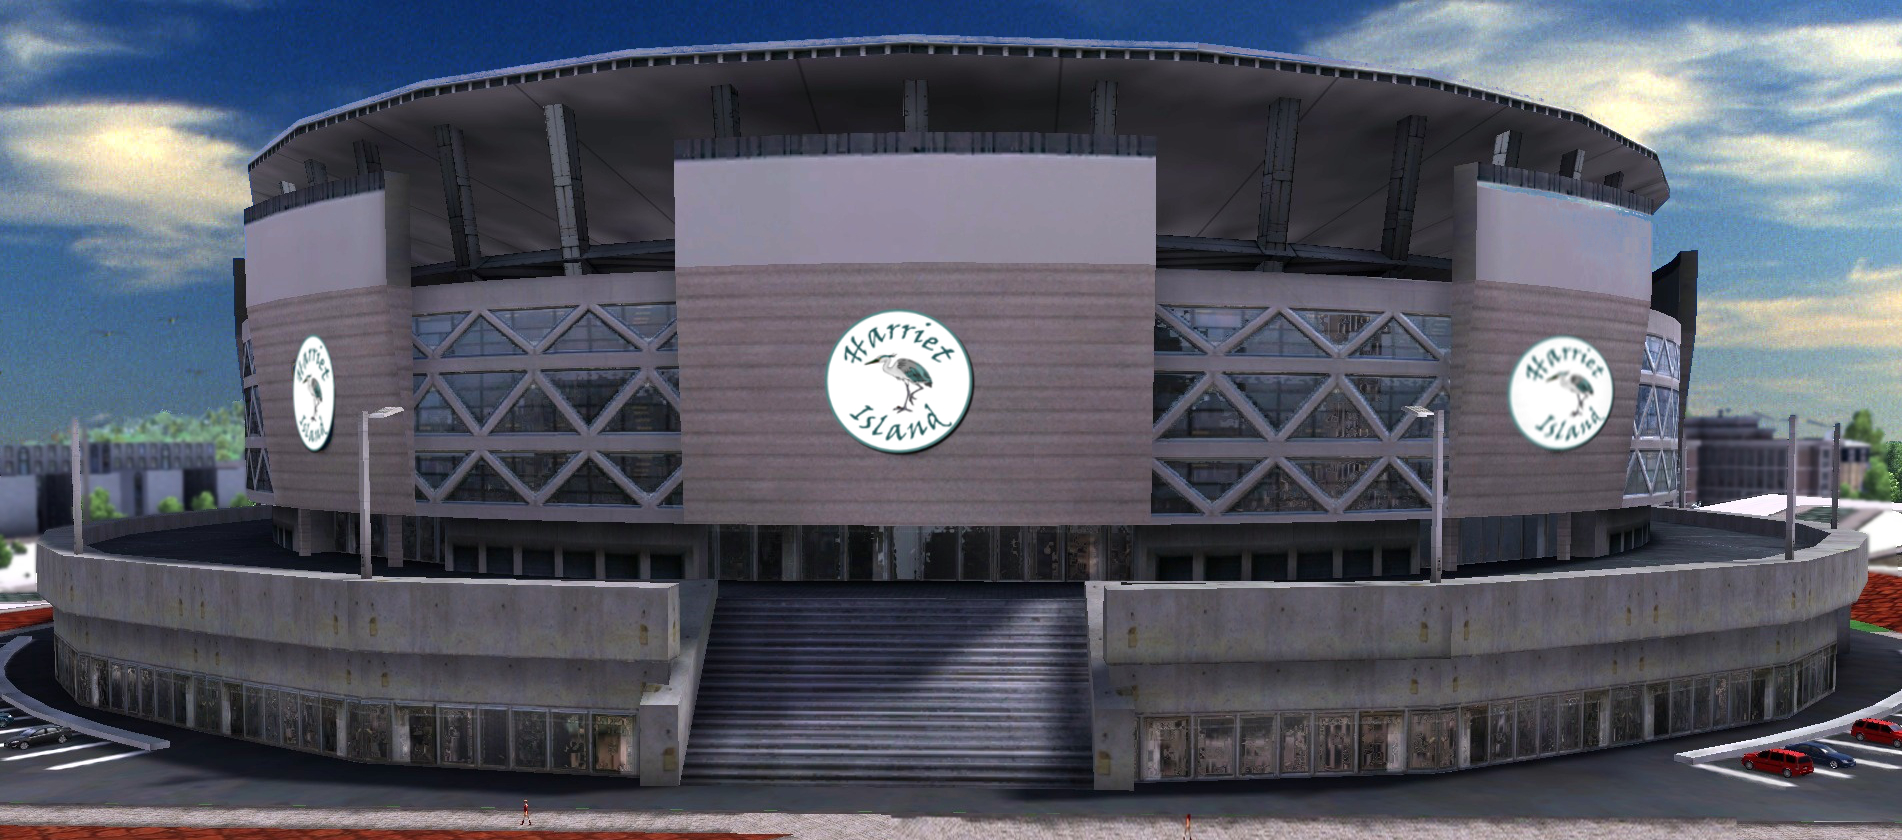 spec Stadium2 entrance.jpg